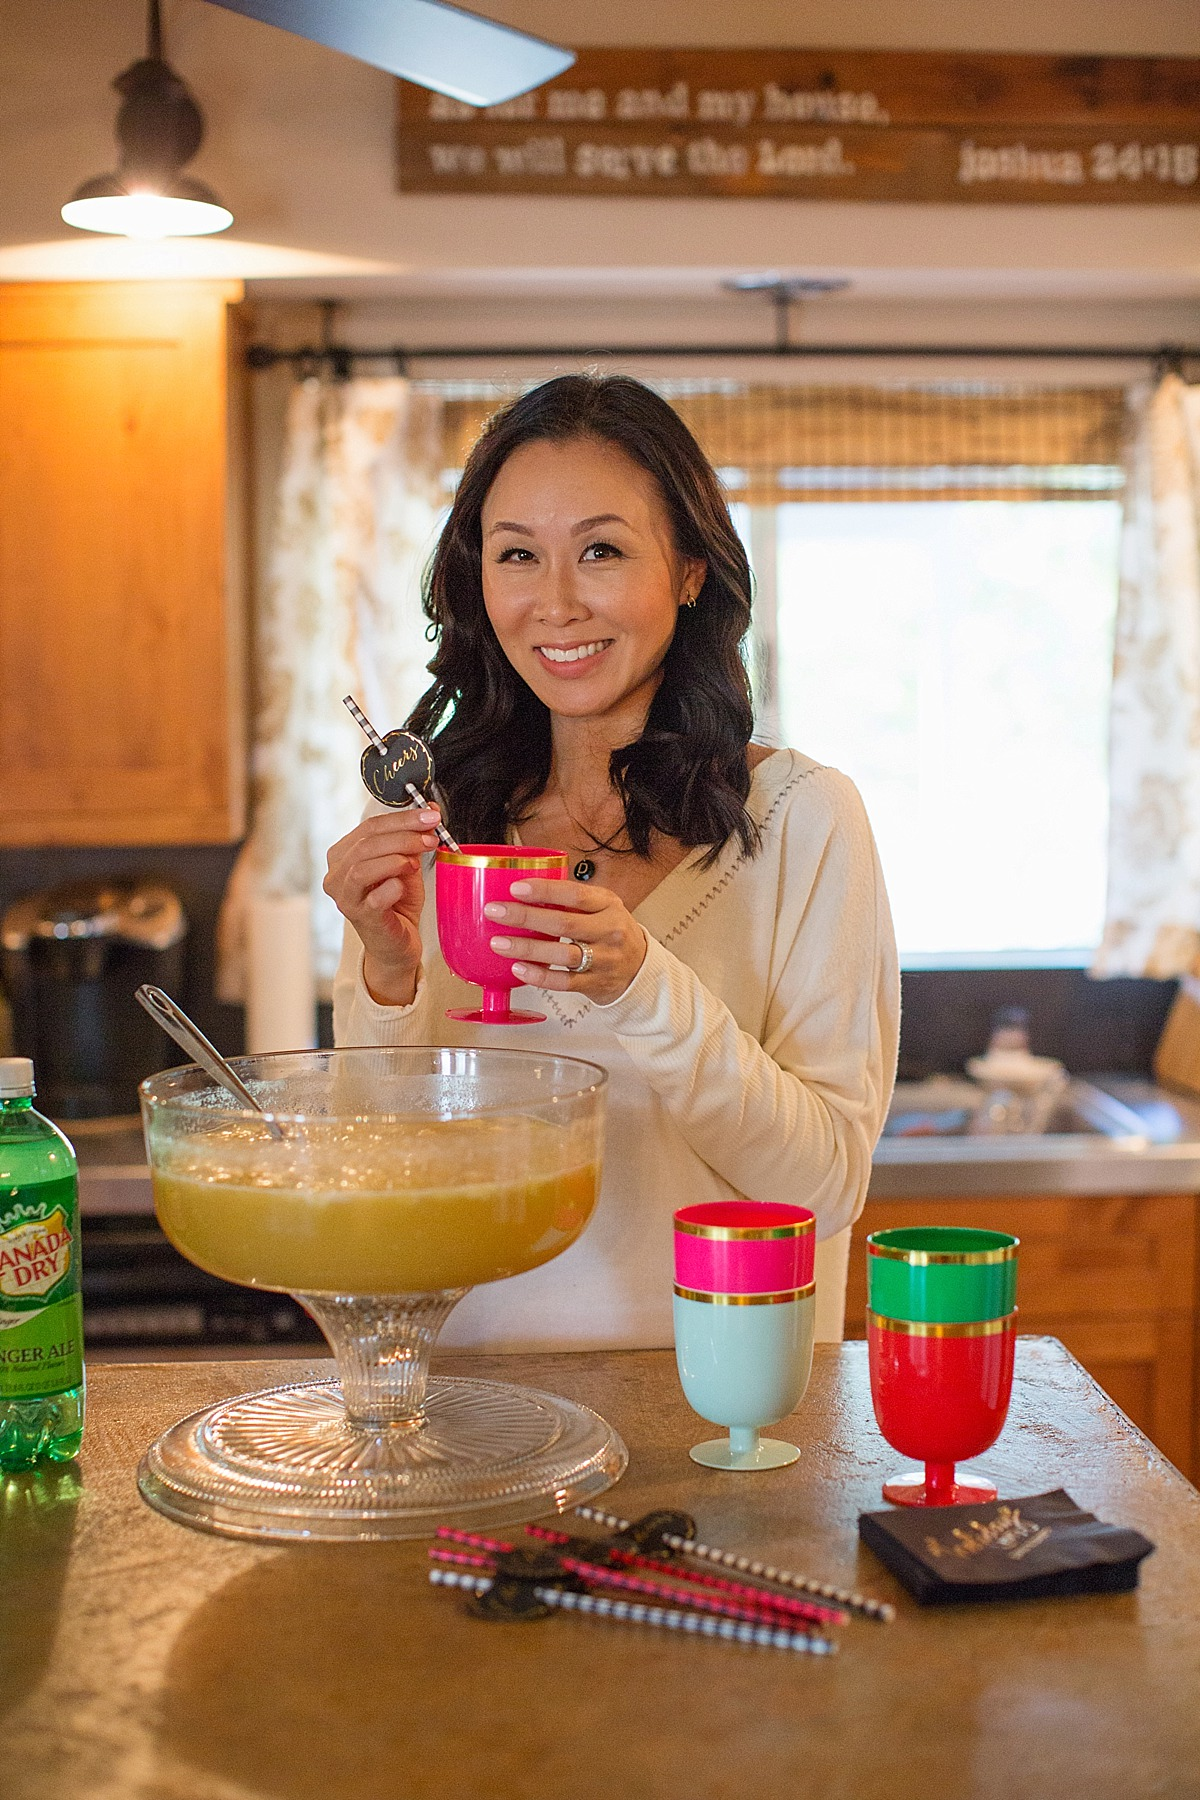 ginger-ale-canada-dry-punch-party-holidays-citrus-pineapple-bananas-recipie-easy-quick-1412